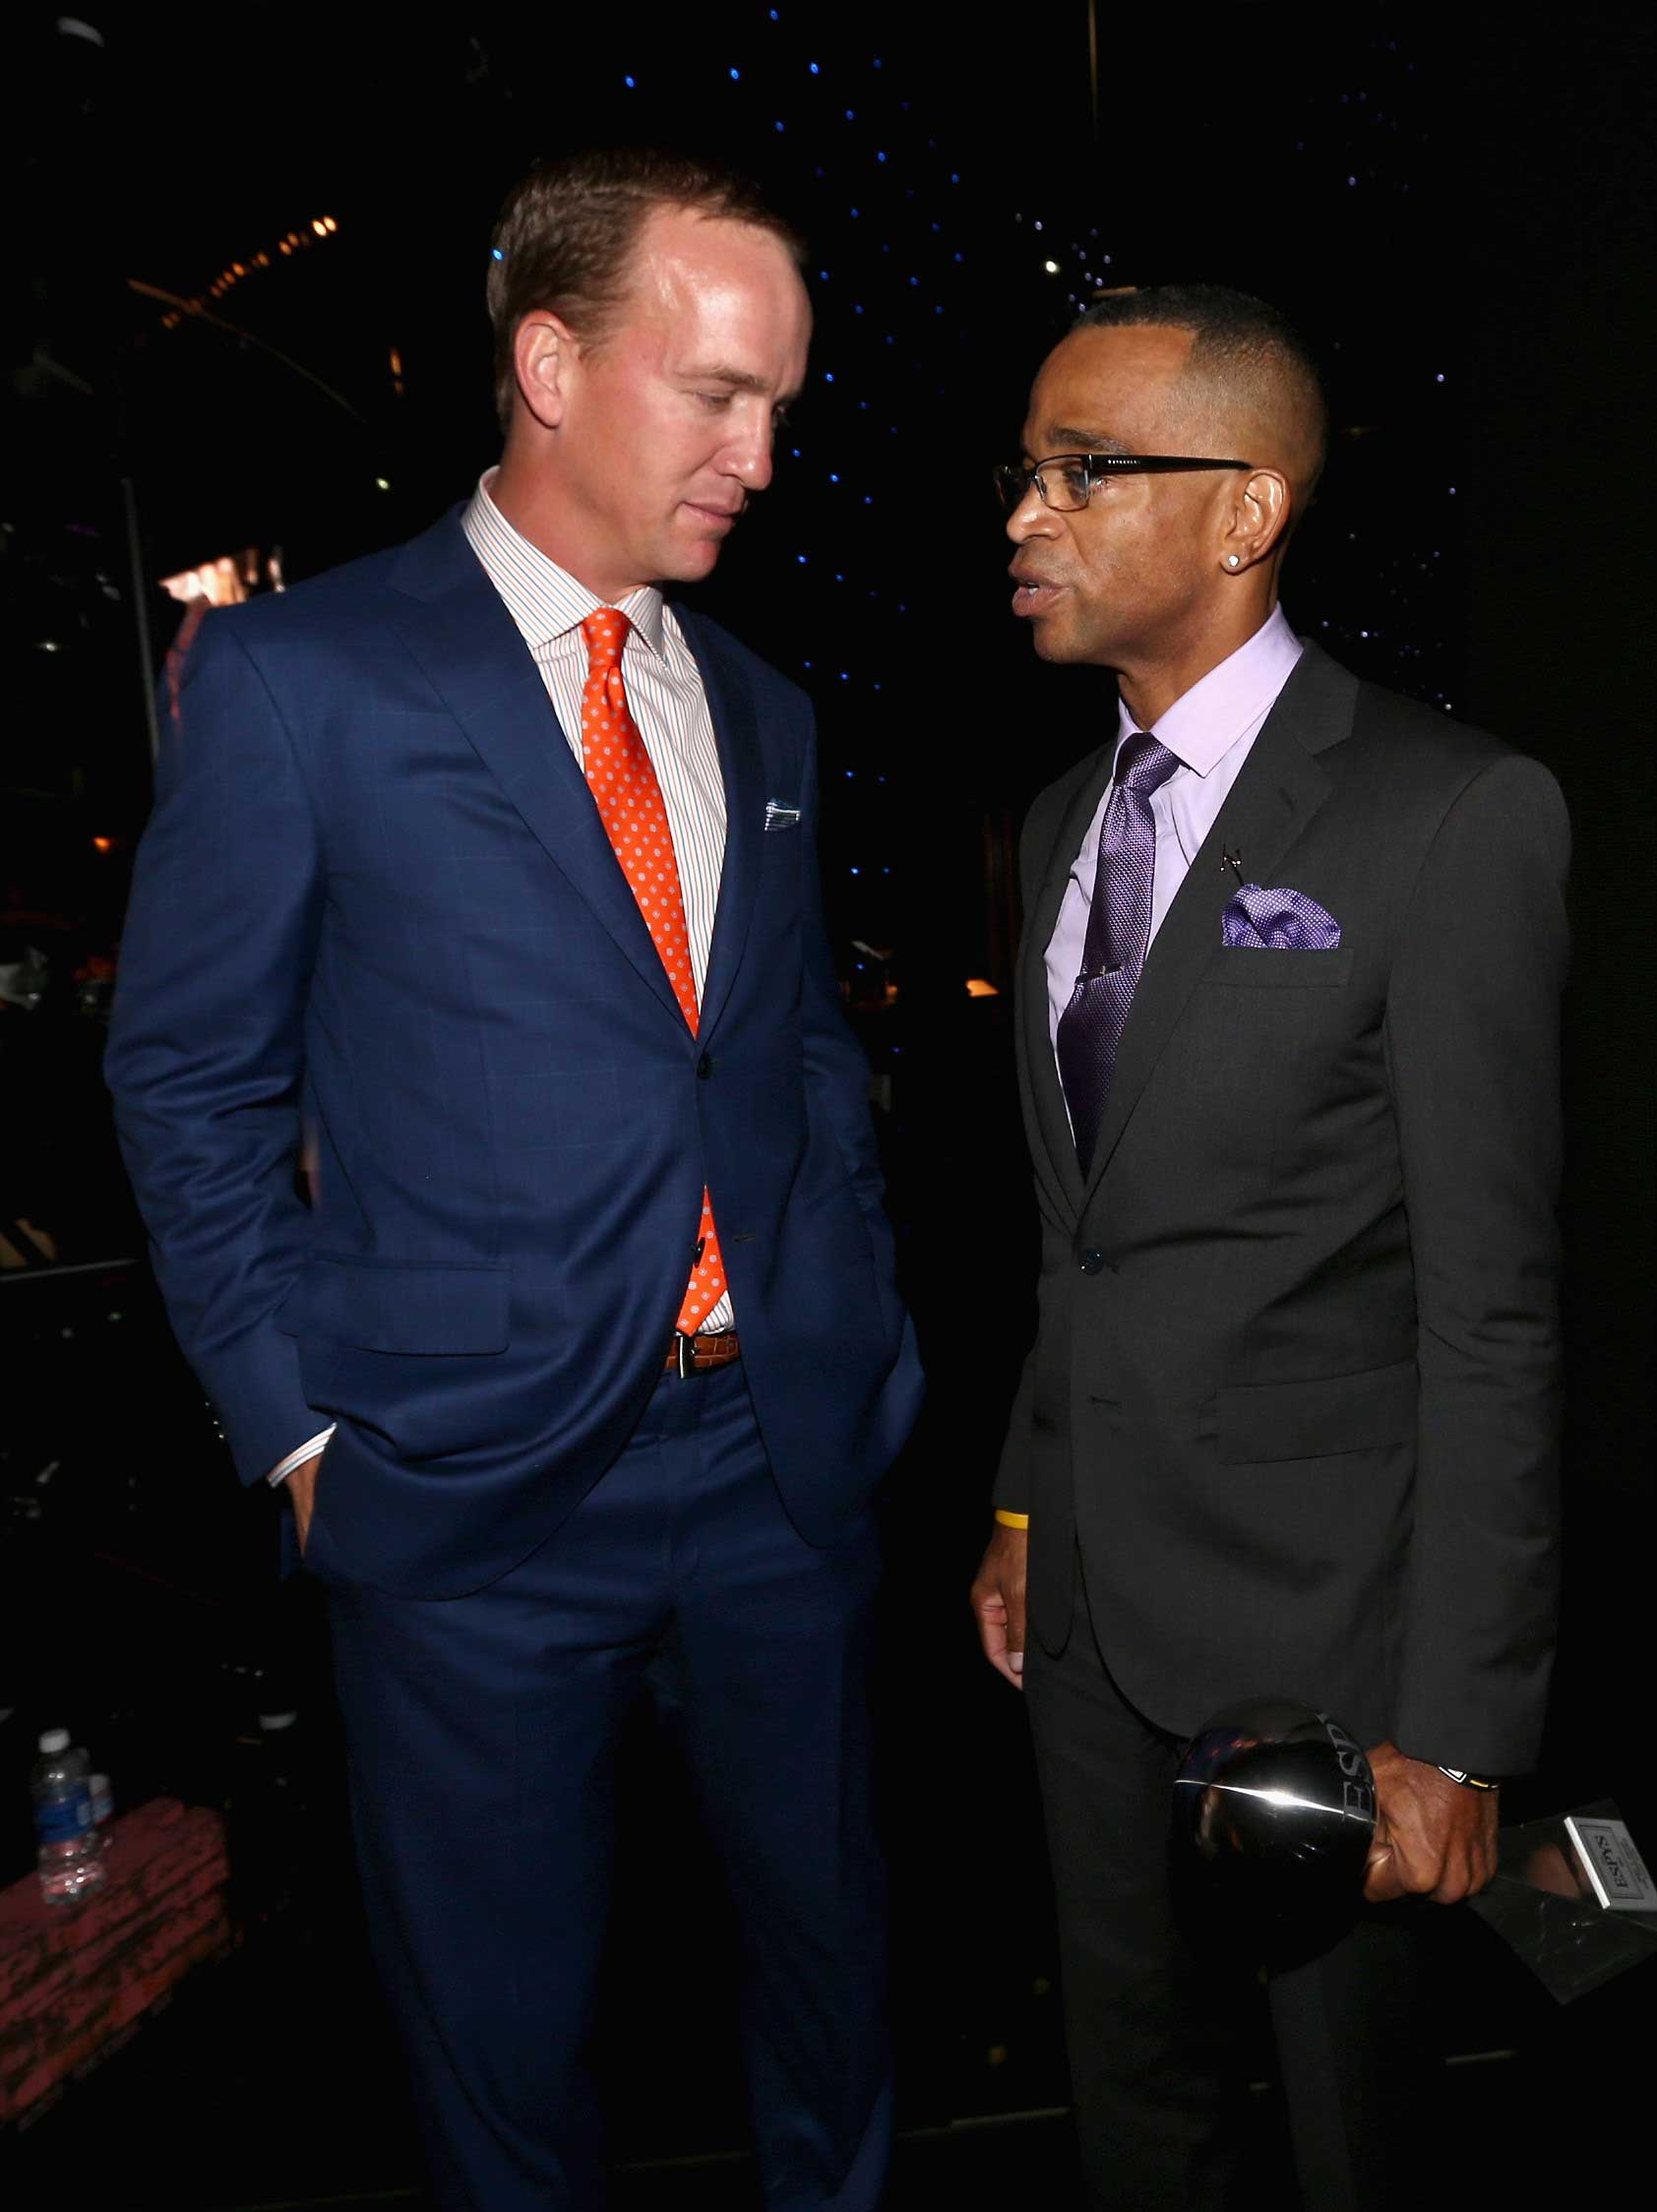 NFL quarterback Peyton Manning with Scott at The 2014 ESPYS at Nokia Theatre L.A. Live on July 16, 2014 in Los Angeles.